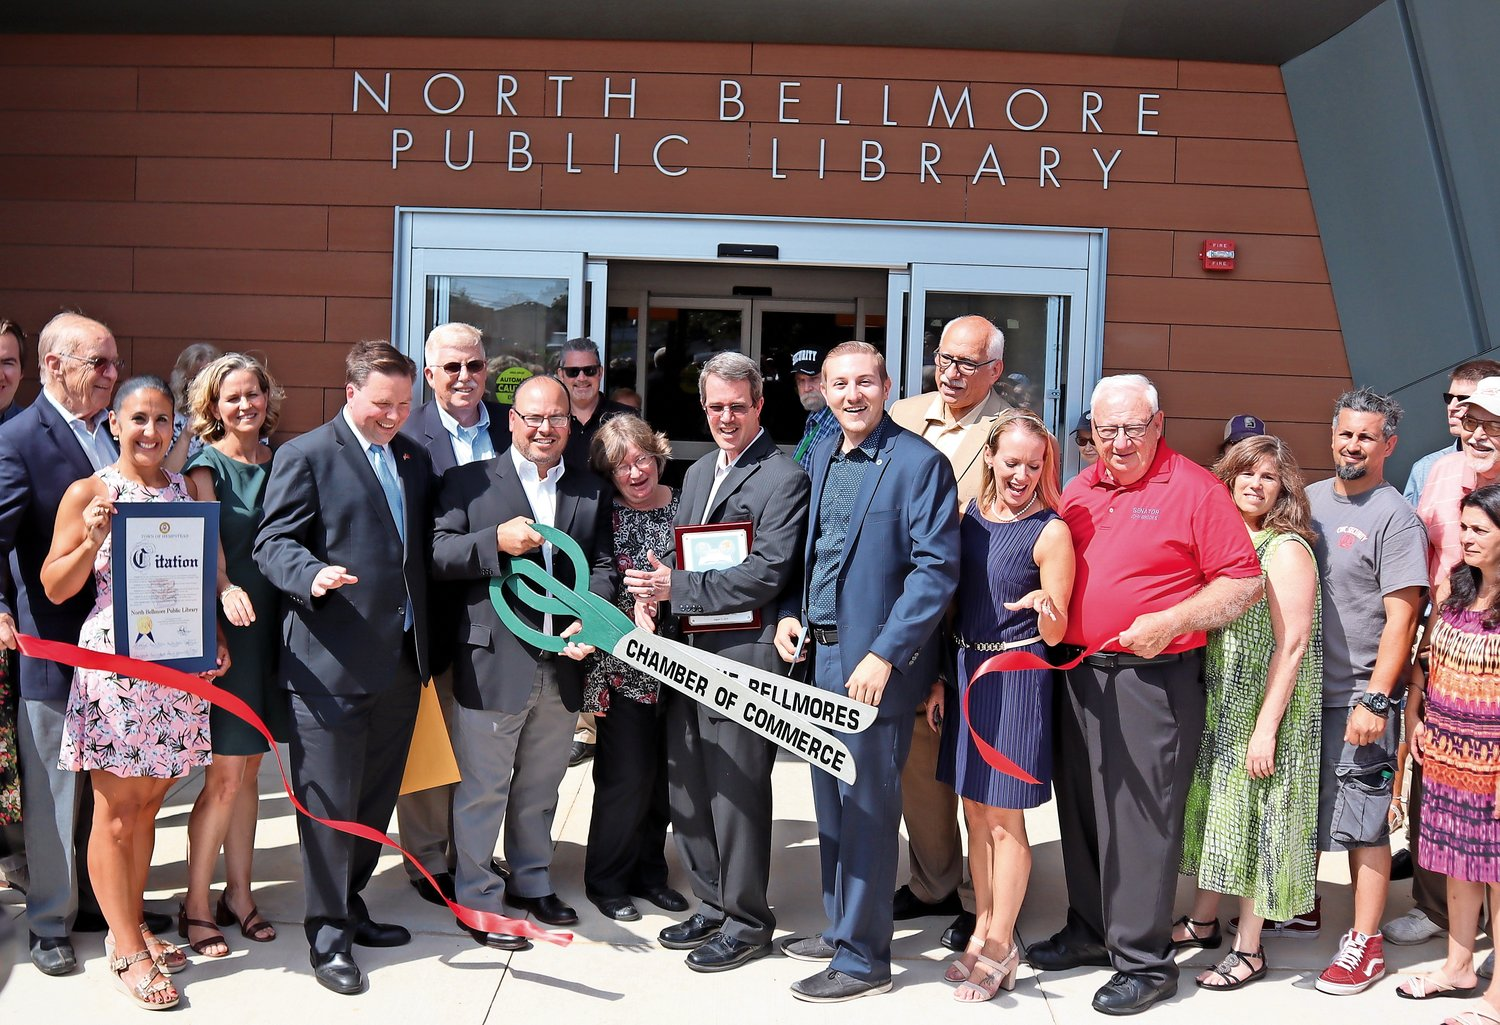 A hot sun didn't crimp the enthusiasm of the elected officials, Chamber of Commerce members, library trustees and library staffers who took part in the ribbon-cutting.